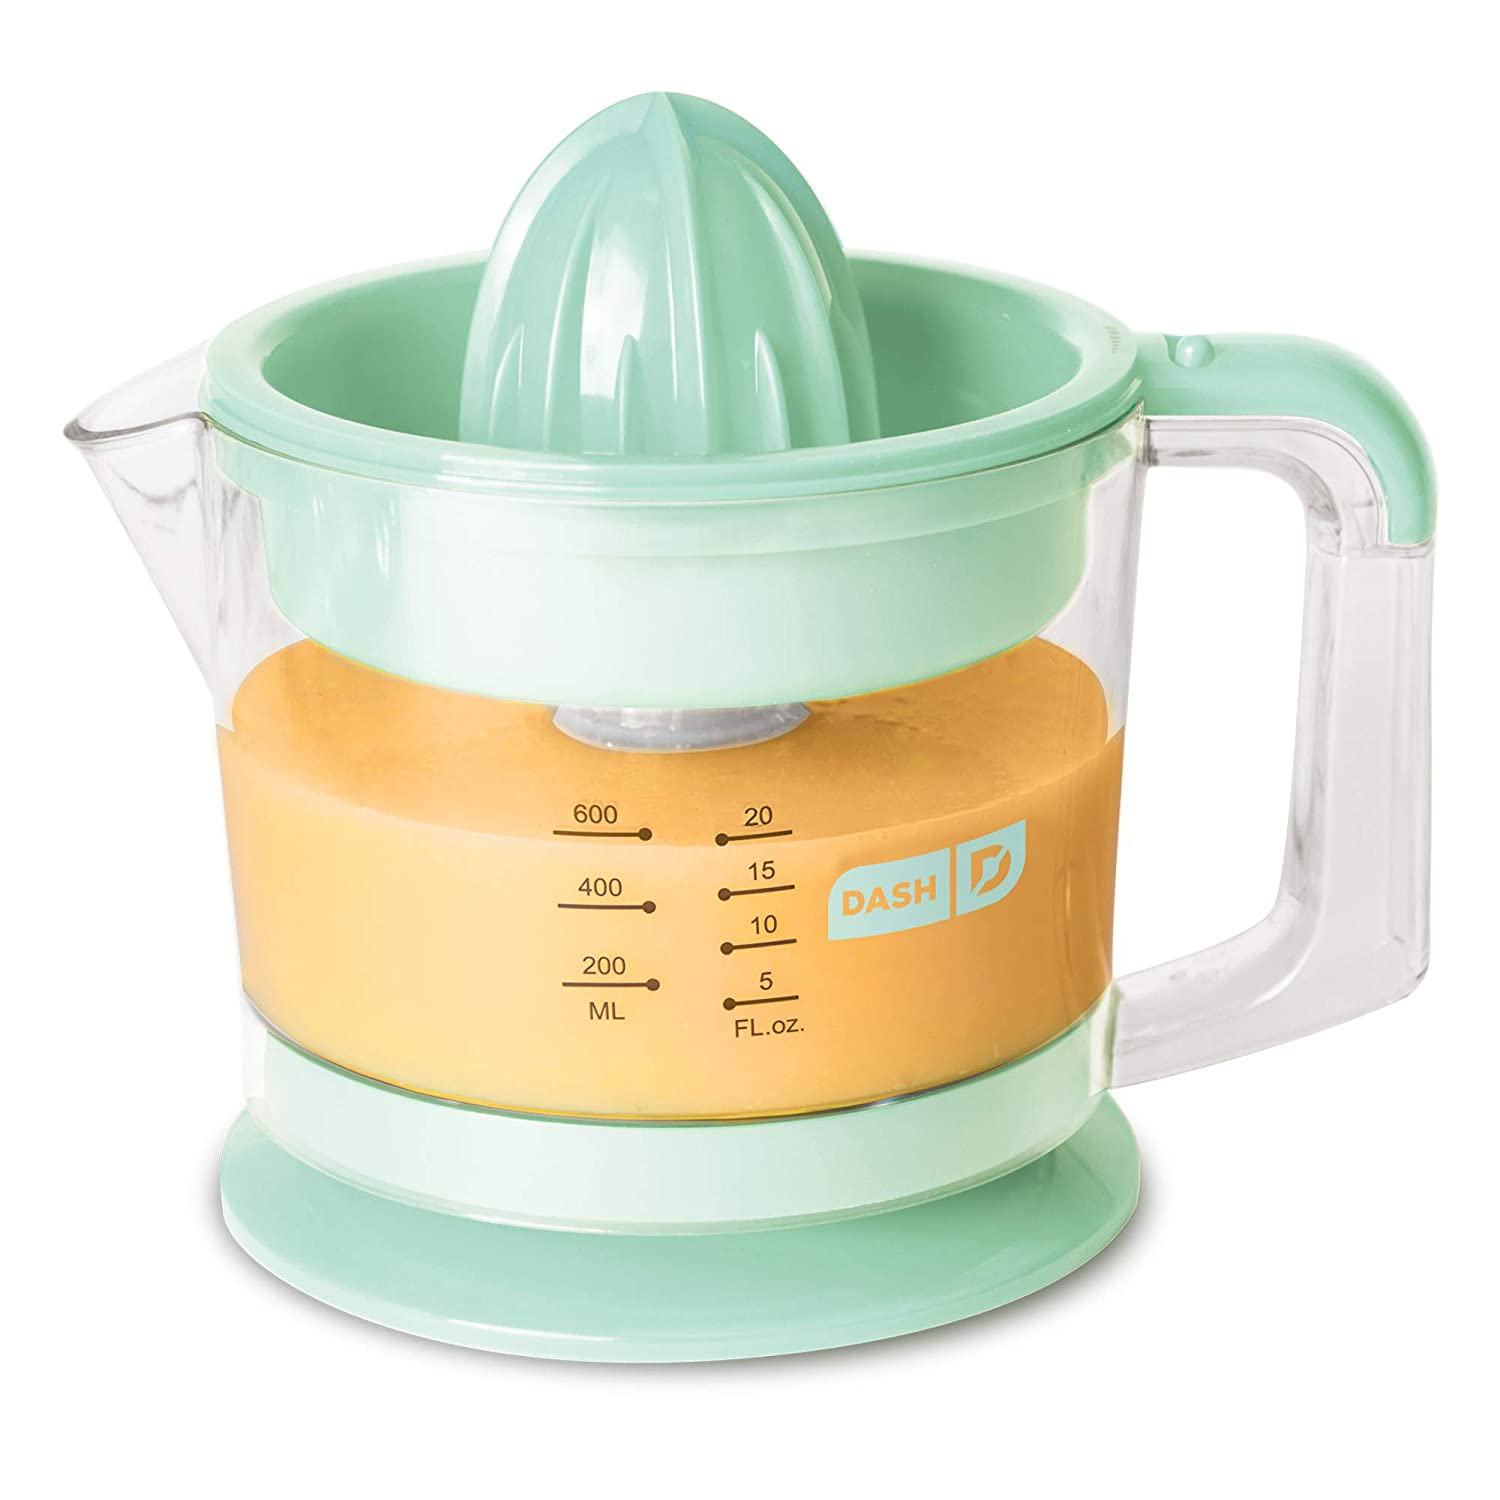 Dash Citrus Juicer Extractor - Easy Pour Spout + 32 oz Pitcher - Aqua